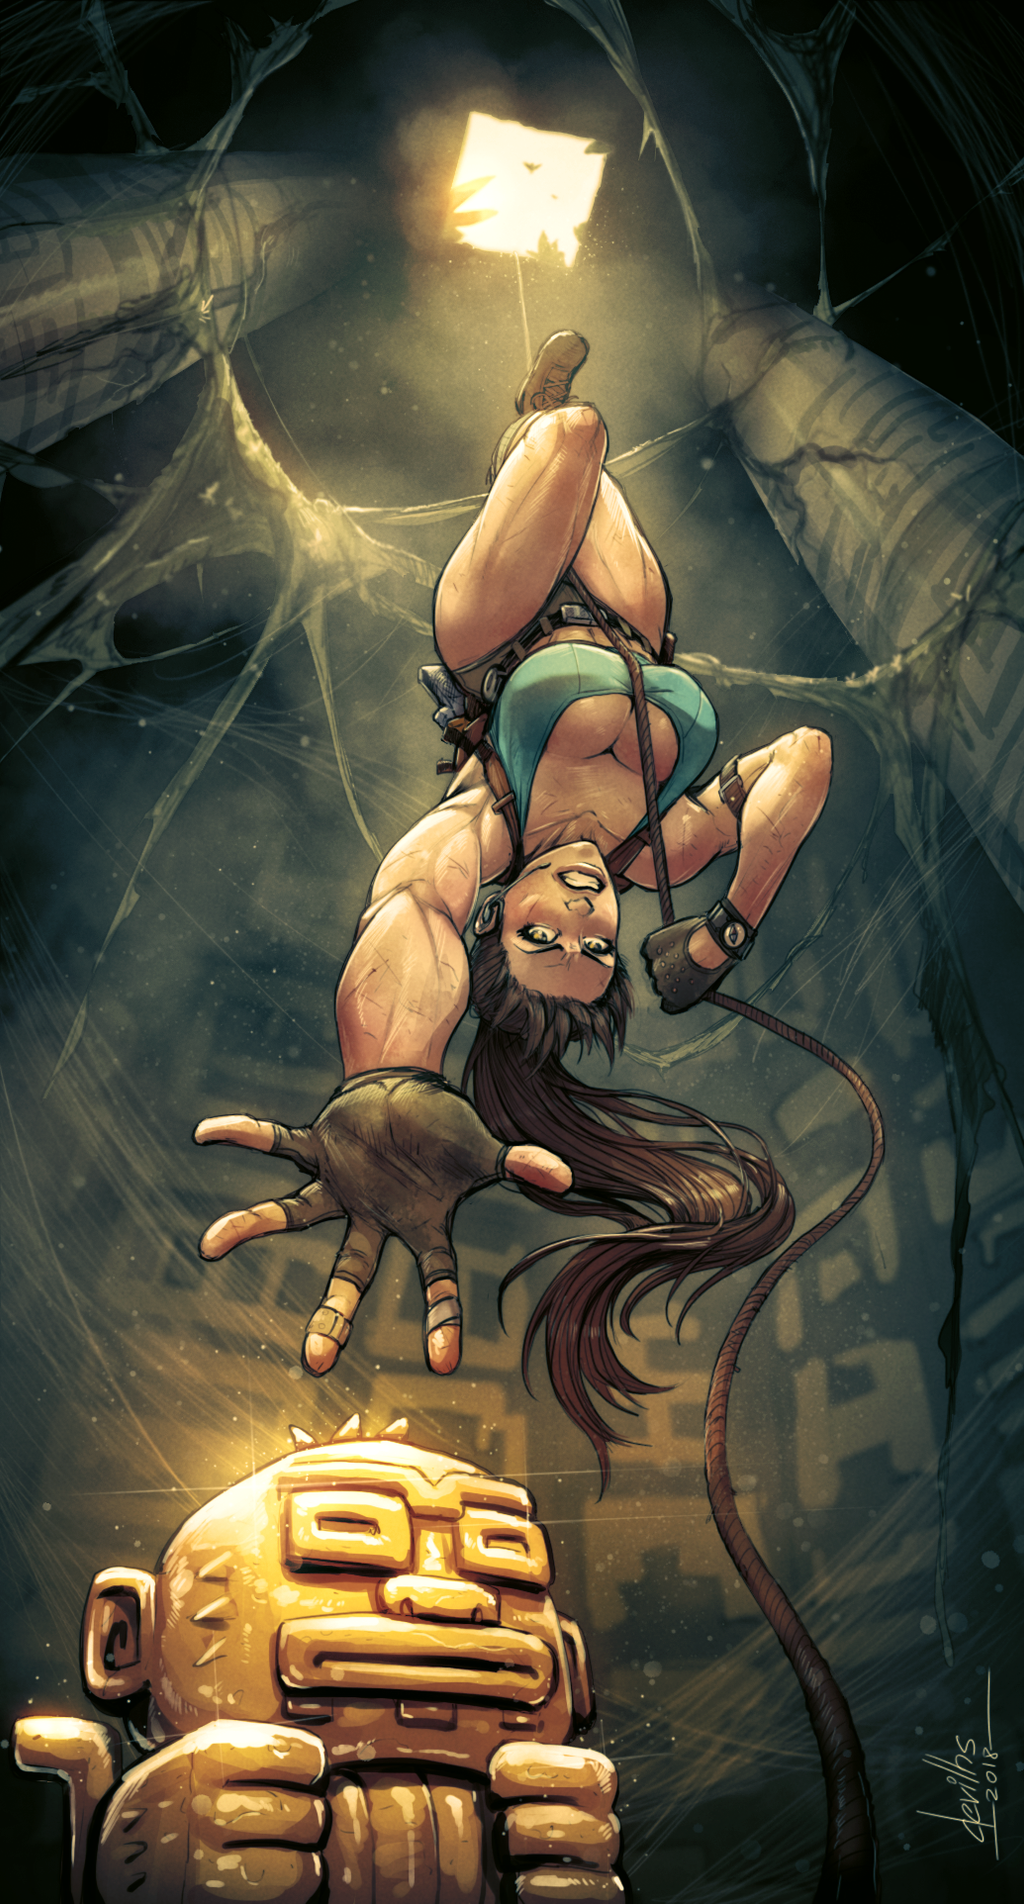 Lara Croft and the Riddle of the Golden Monkey by devilhs